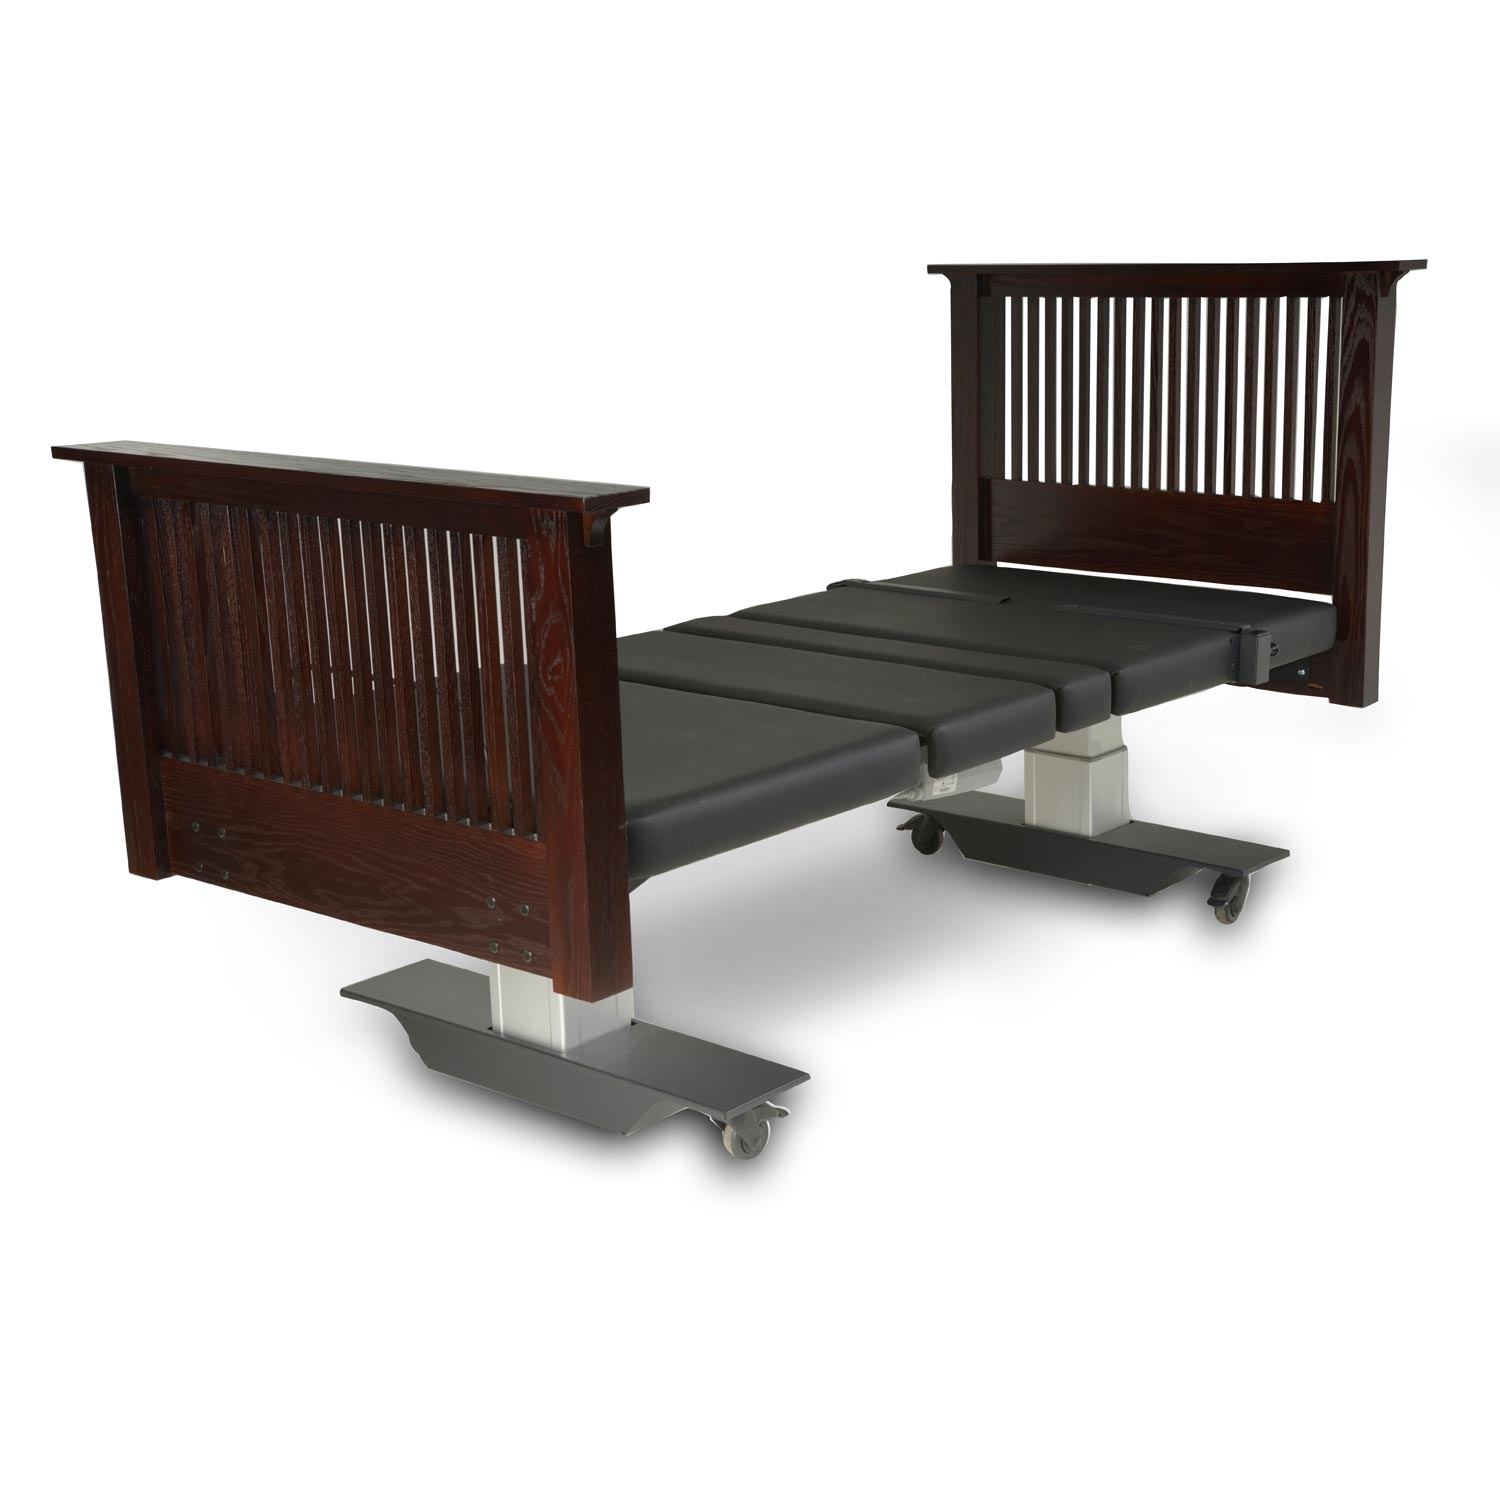 Assured Comfort Mobile Series twin bed